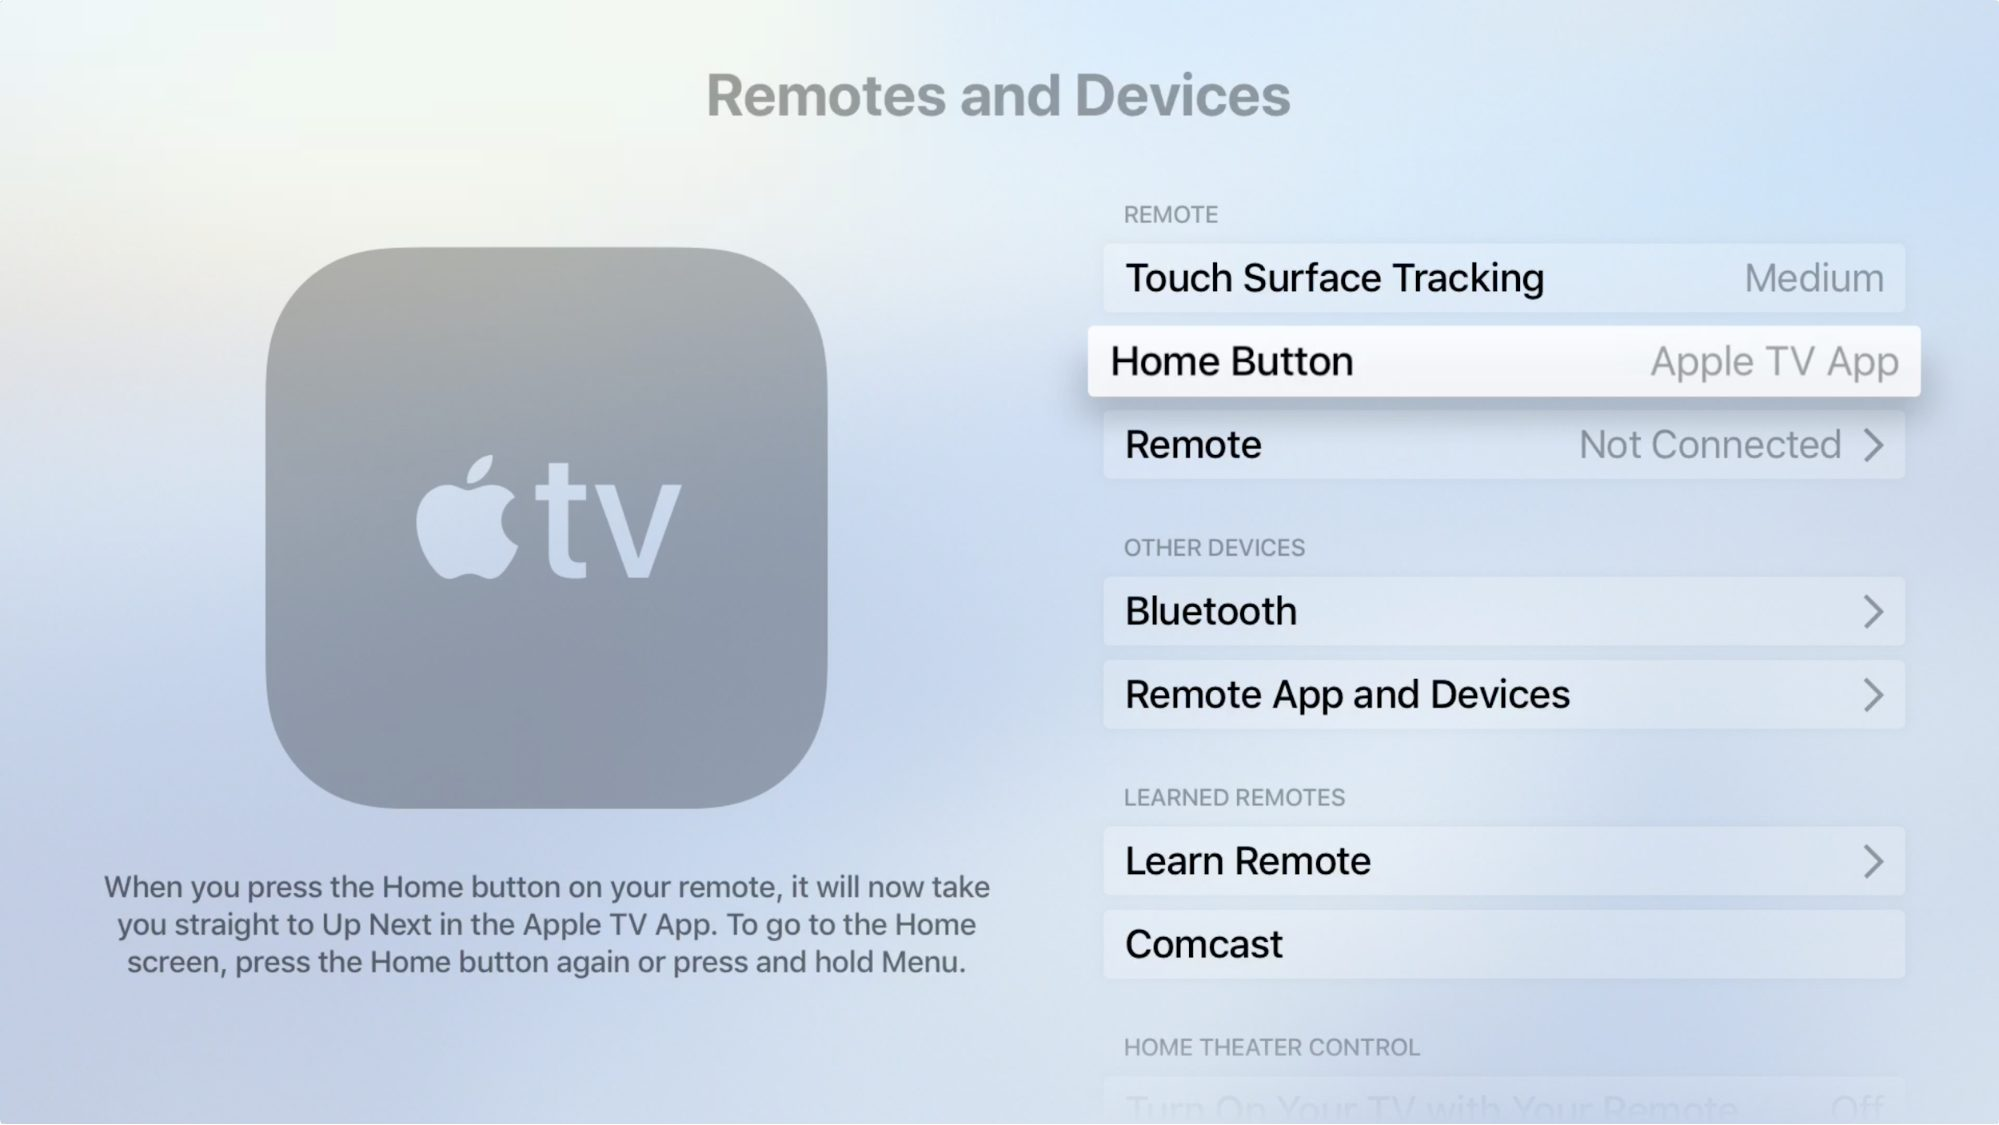 TipBITS: Make the Apple TV's Home Button Go Home - TidBITS